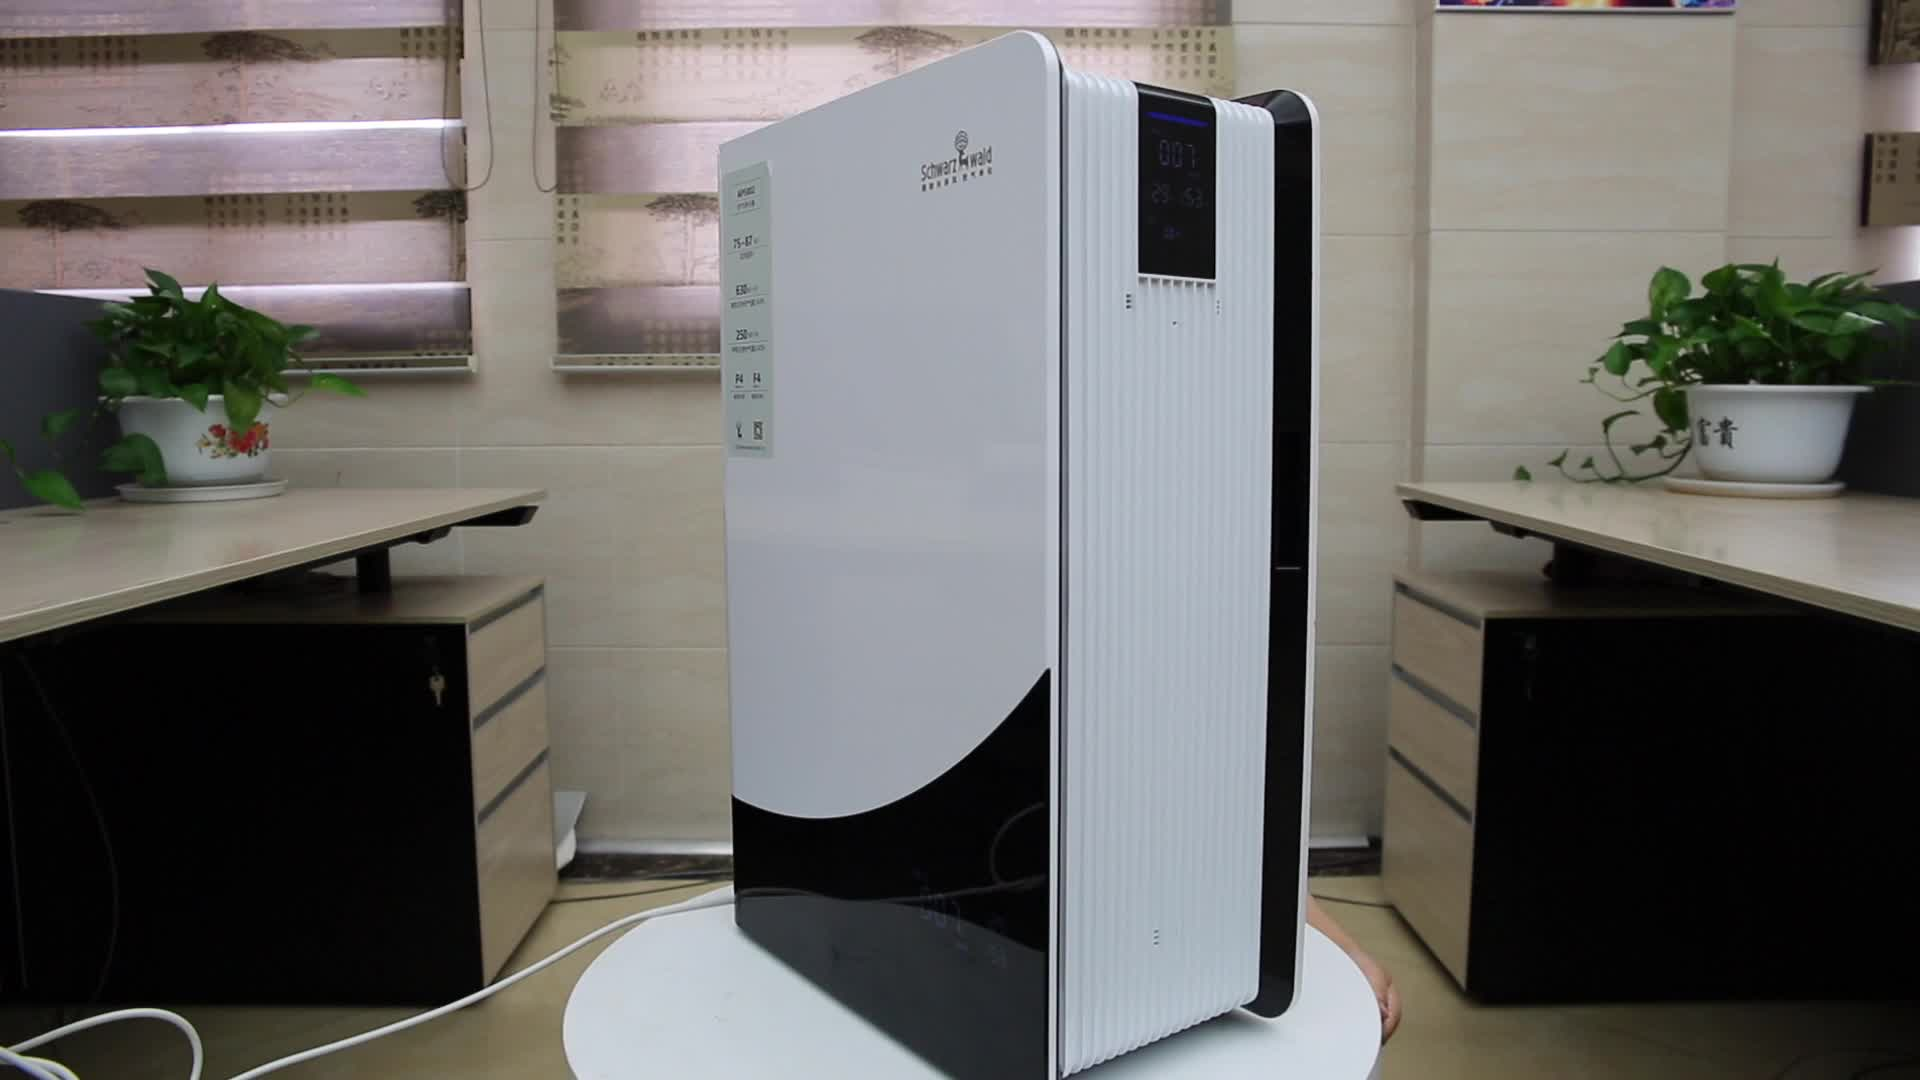 Professional home air purifier from Factory Top China home air purifiers and home air filter purifications